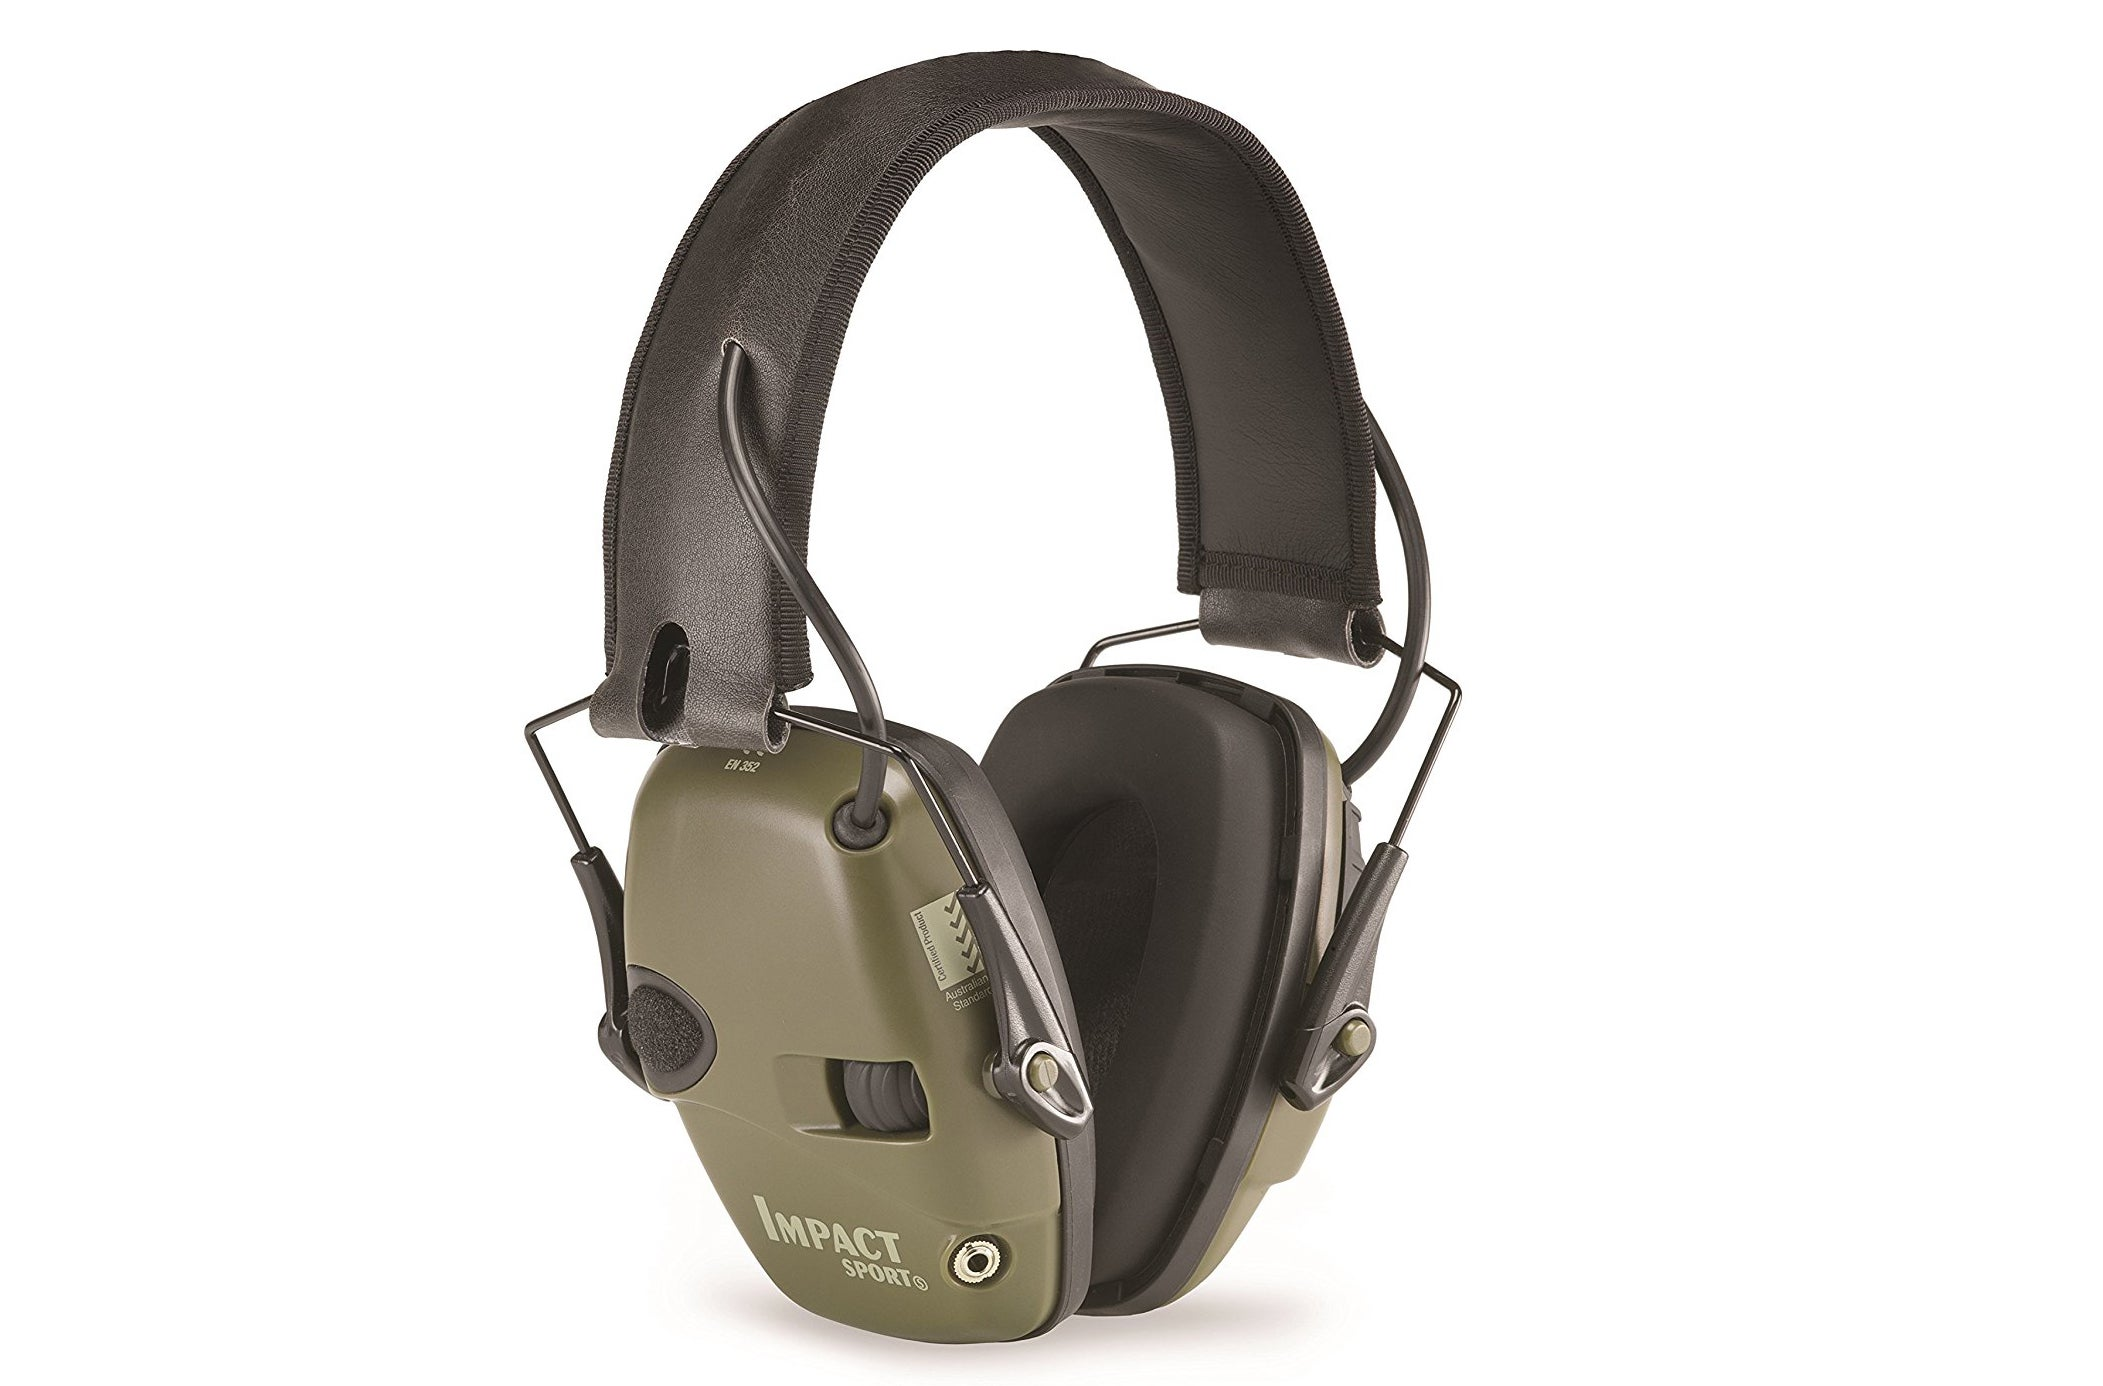 It's difficult to go to a range and not see at least a couple shooters wearing Howard Leight Sport Impact electronic earmuffs.